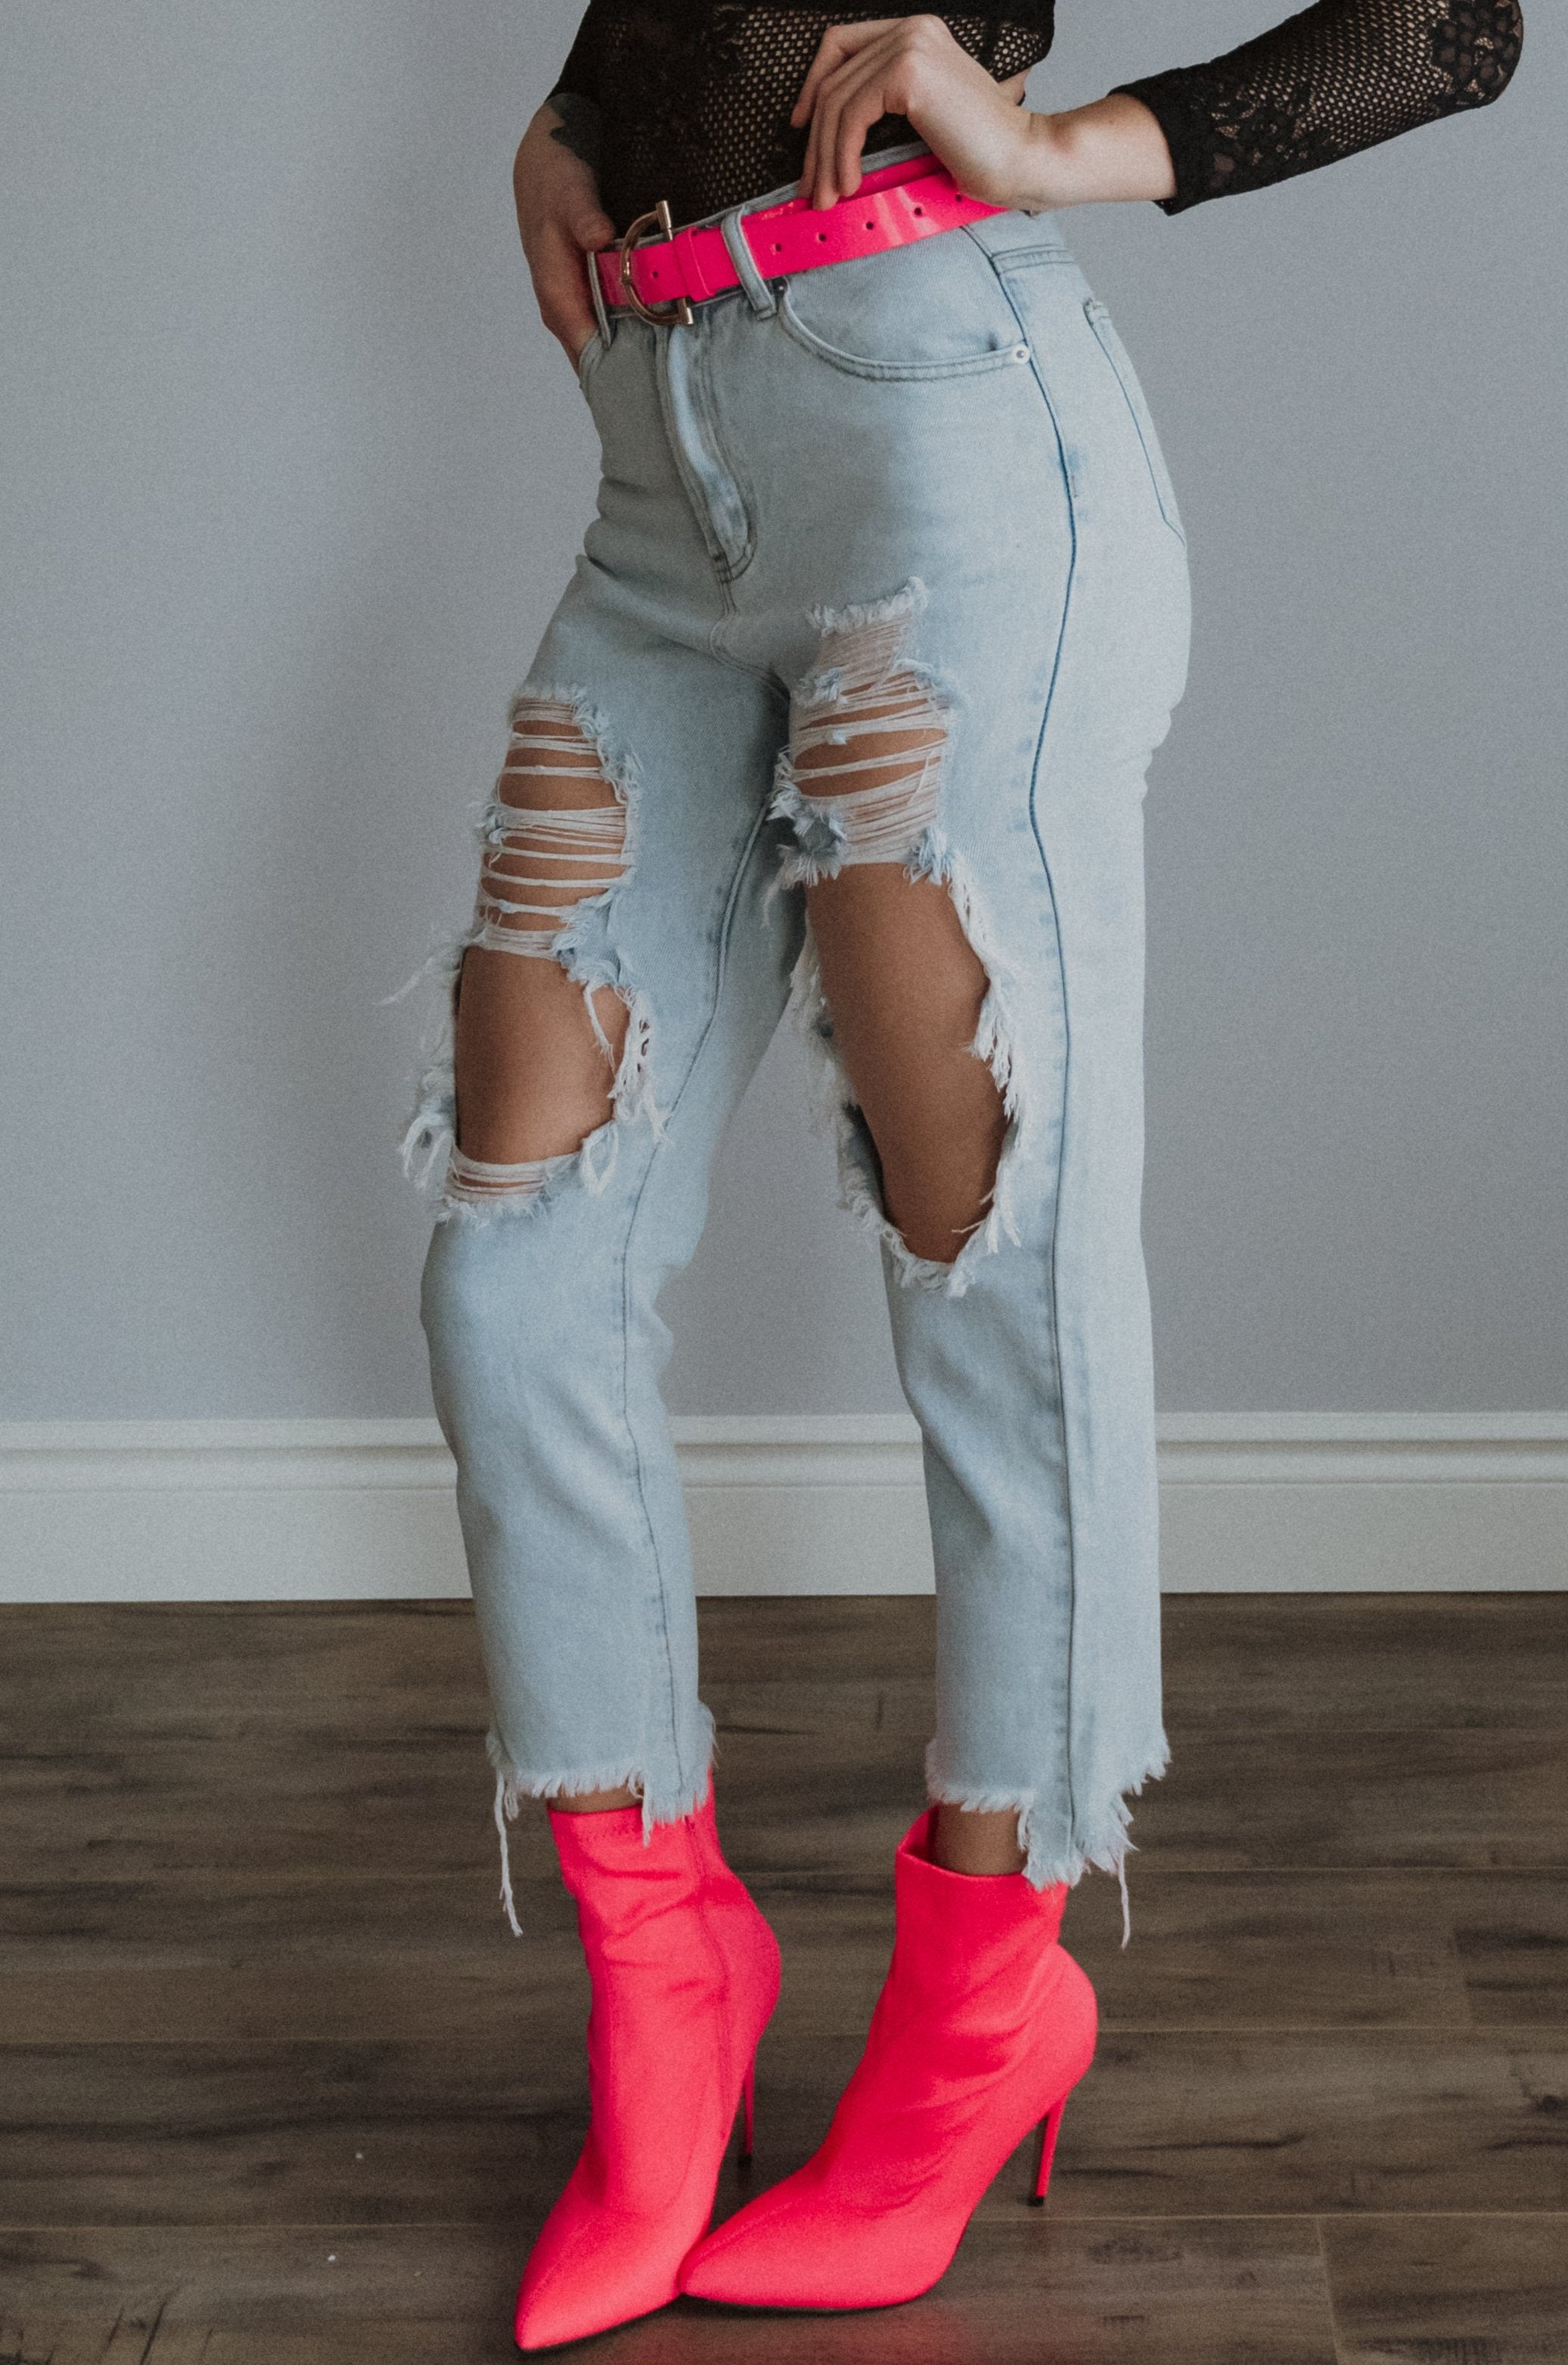 xSOLD OUTx But Make It Fashion Ripped Knees High Waist Mom Jeans